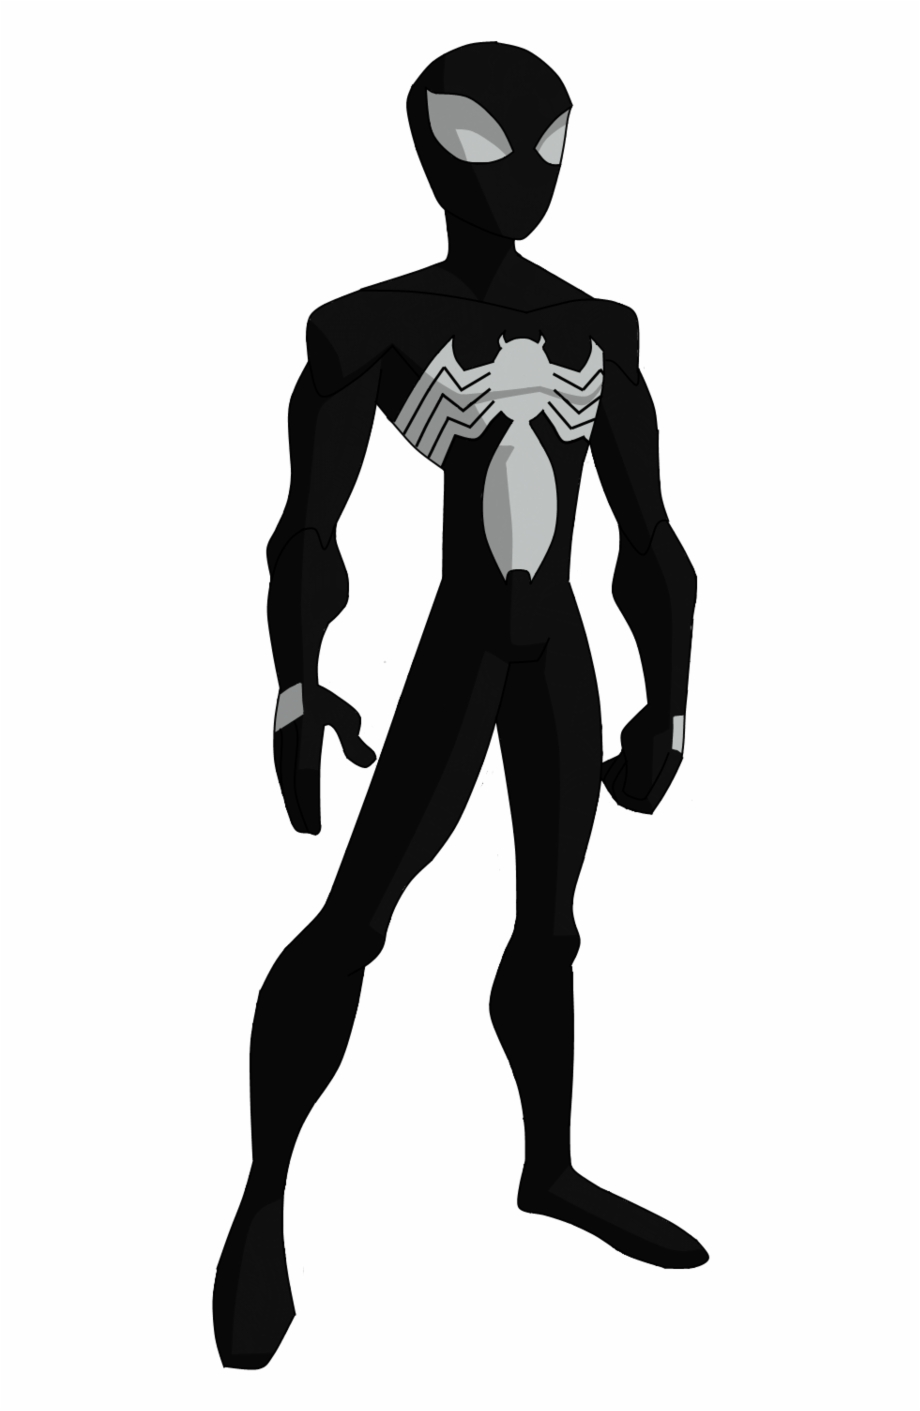 Symbiote Spider Man Png - And For Funnsies Here's Him Kissing The Black Cat - Spectacular ...